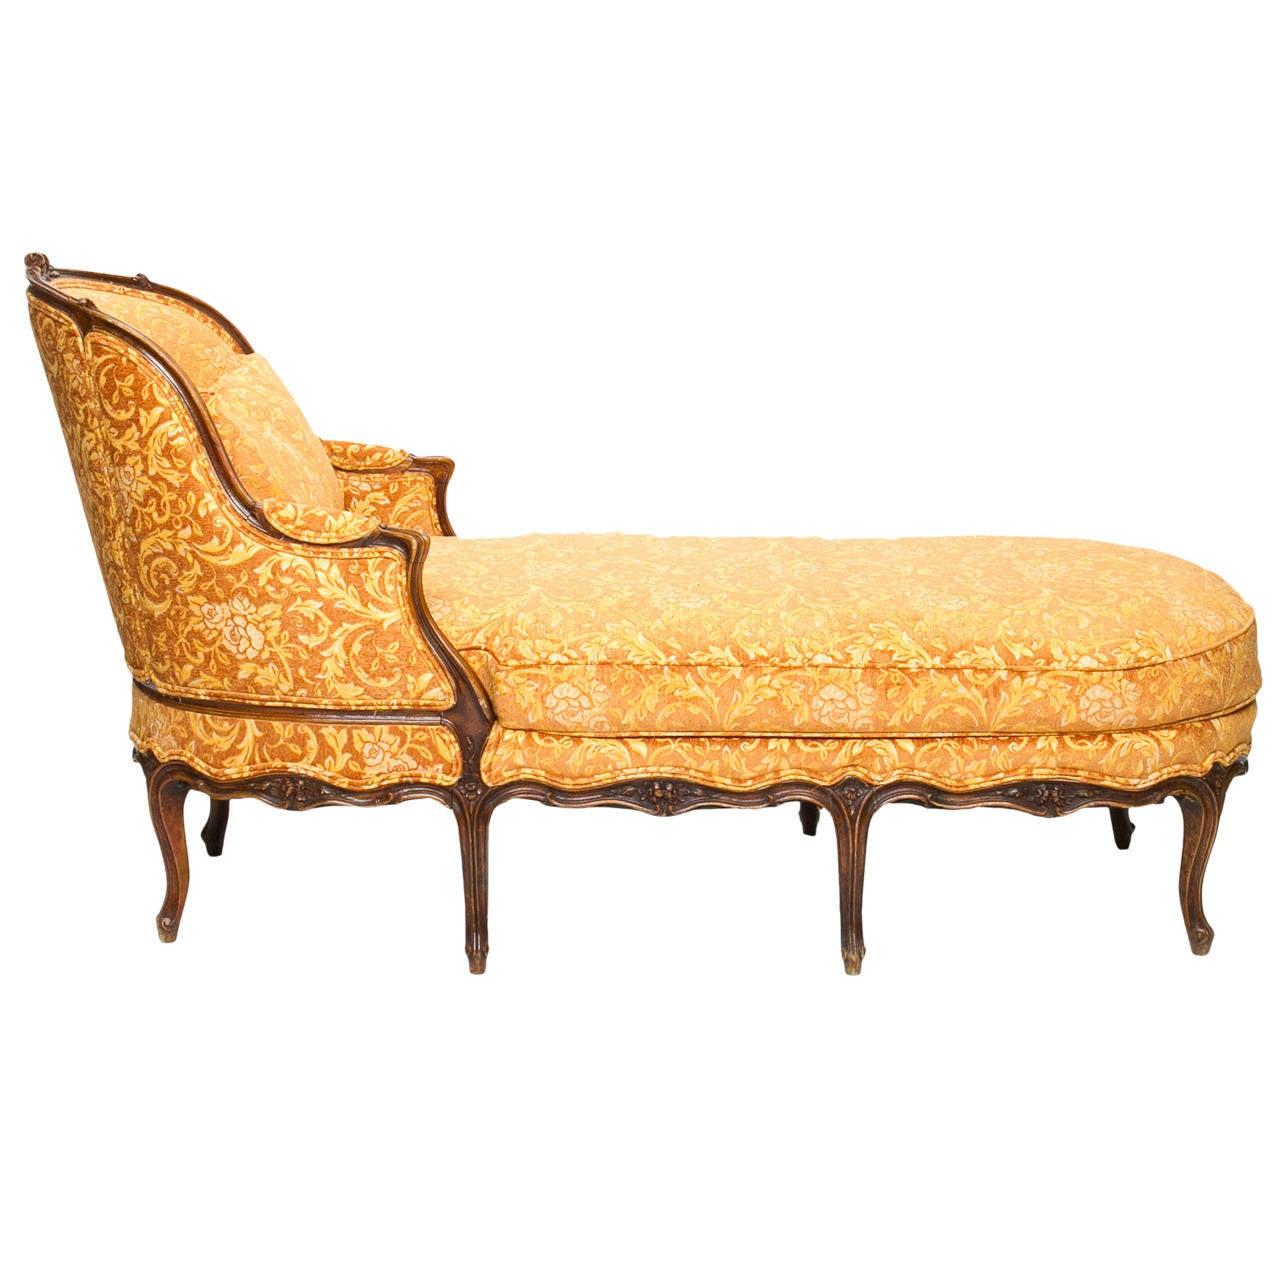 19th century louis xv chaise longue at 1stdibs for Chaise longue furniture